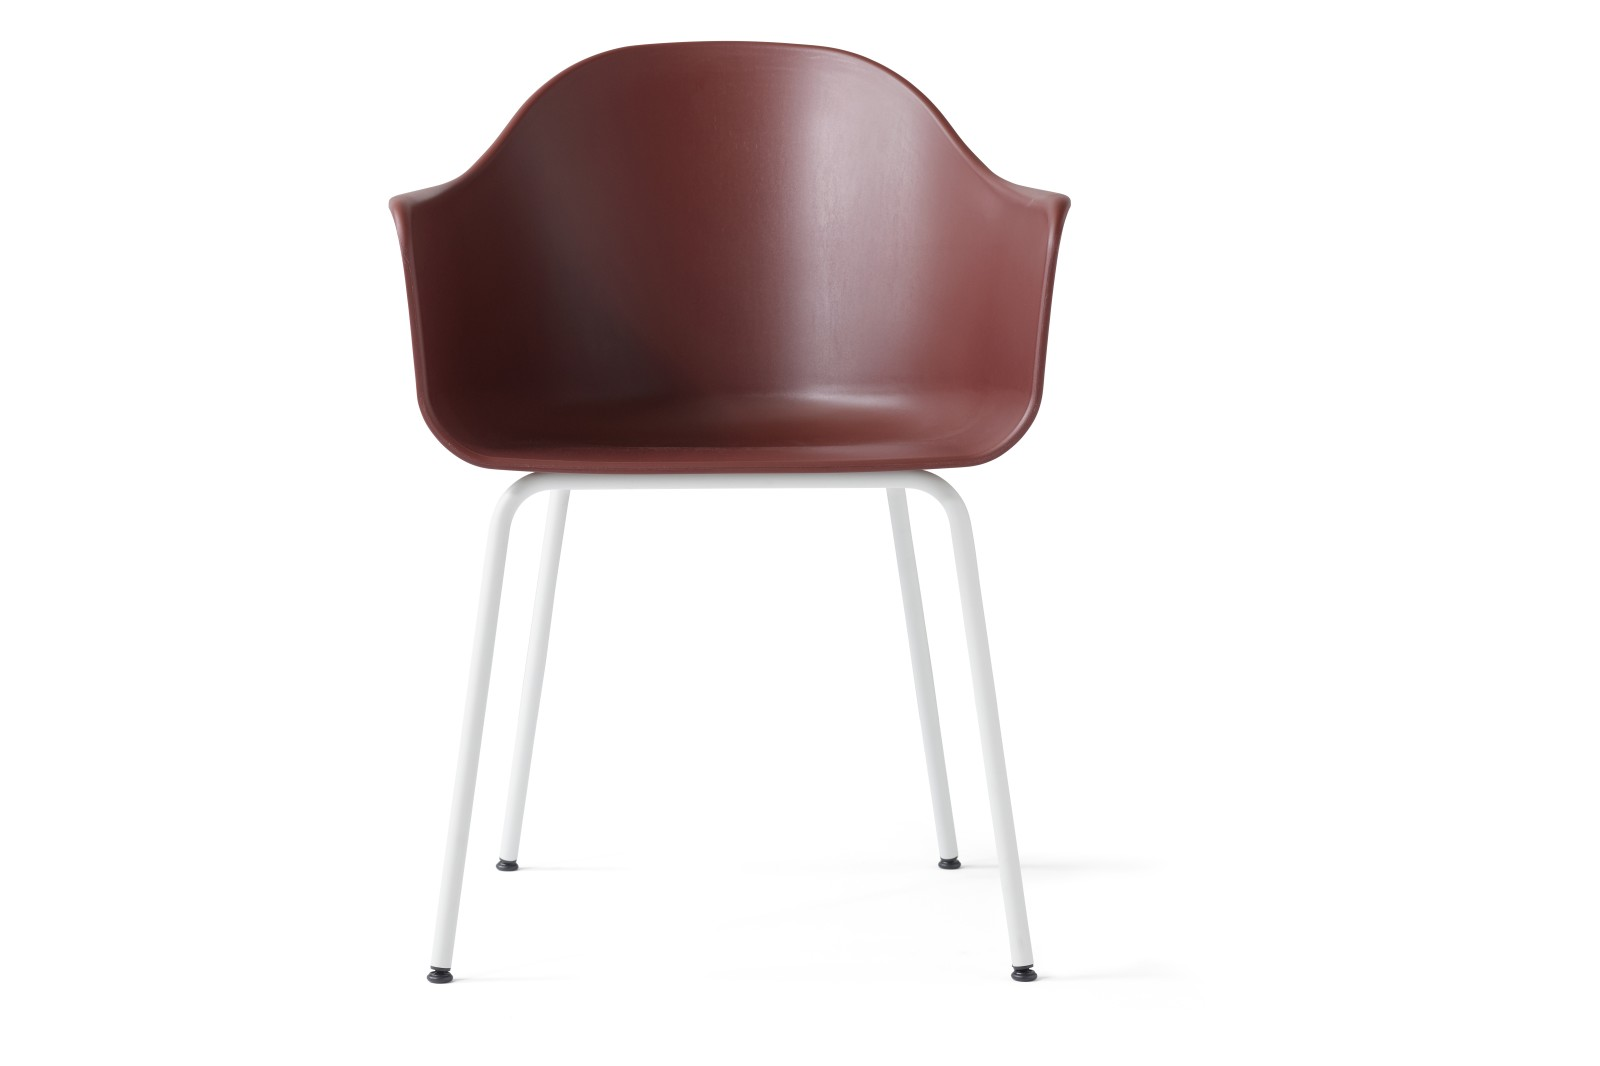 Harbour Chair - Steel Base Light Grey, Burned Red